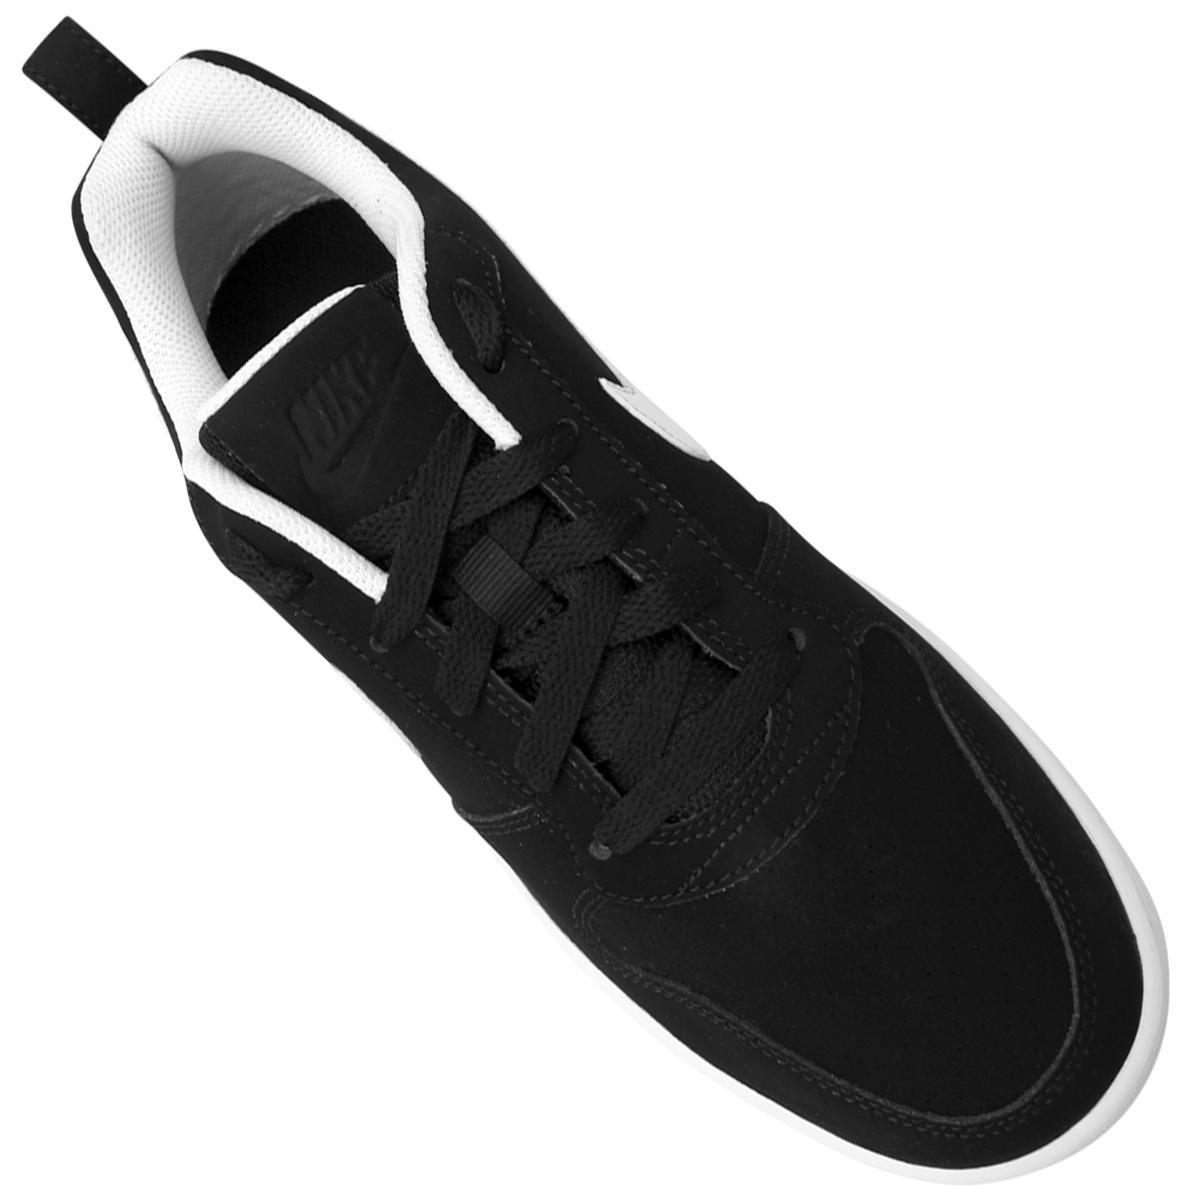 Tênis Nike Branco Tênis e Preto Masculino Low Recreation Nike BwEq7E5